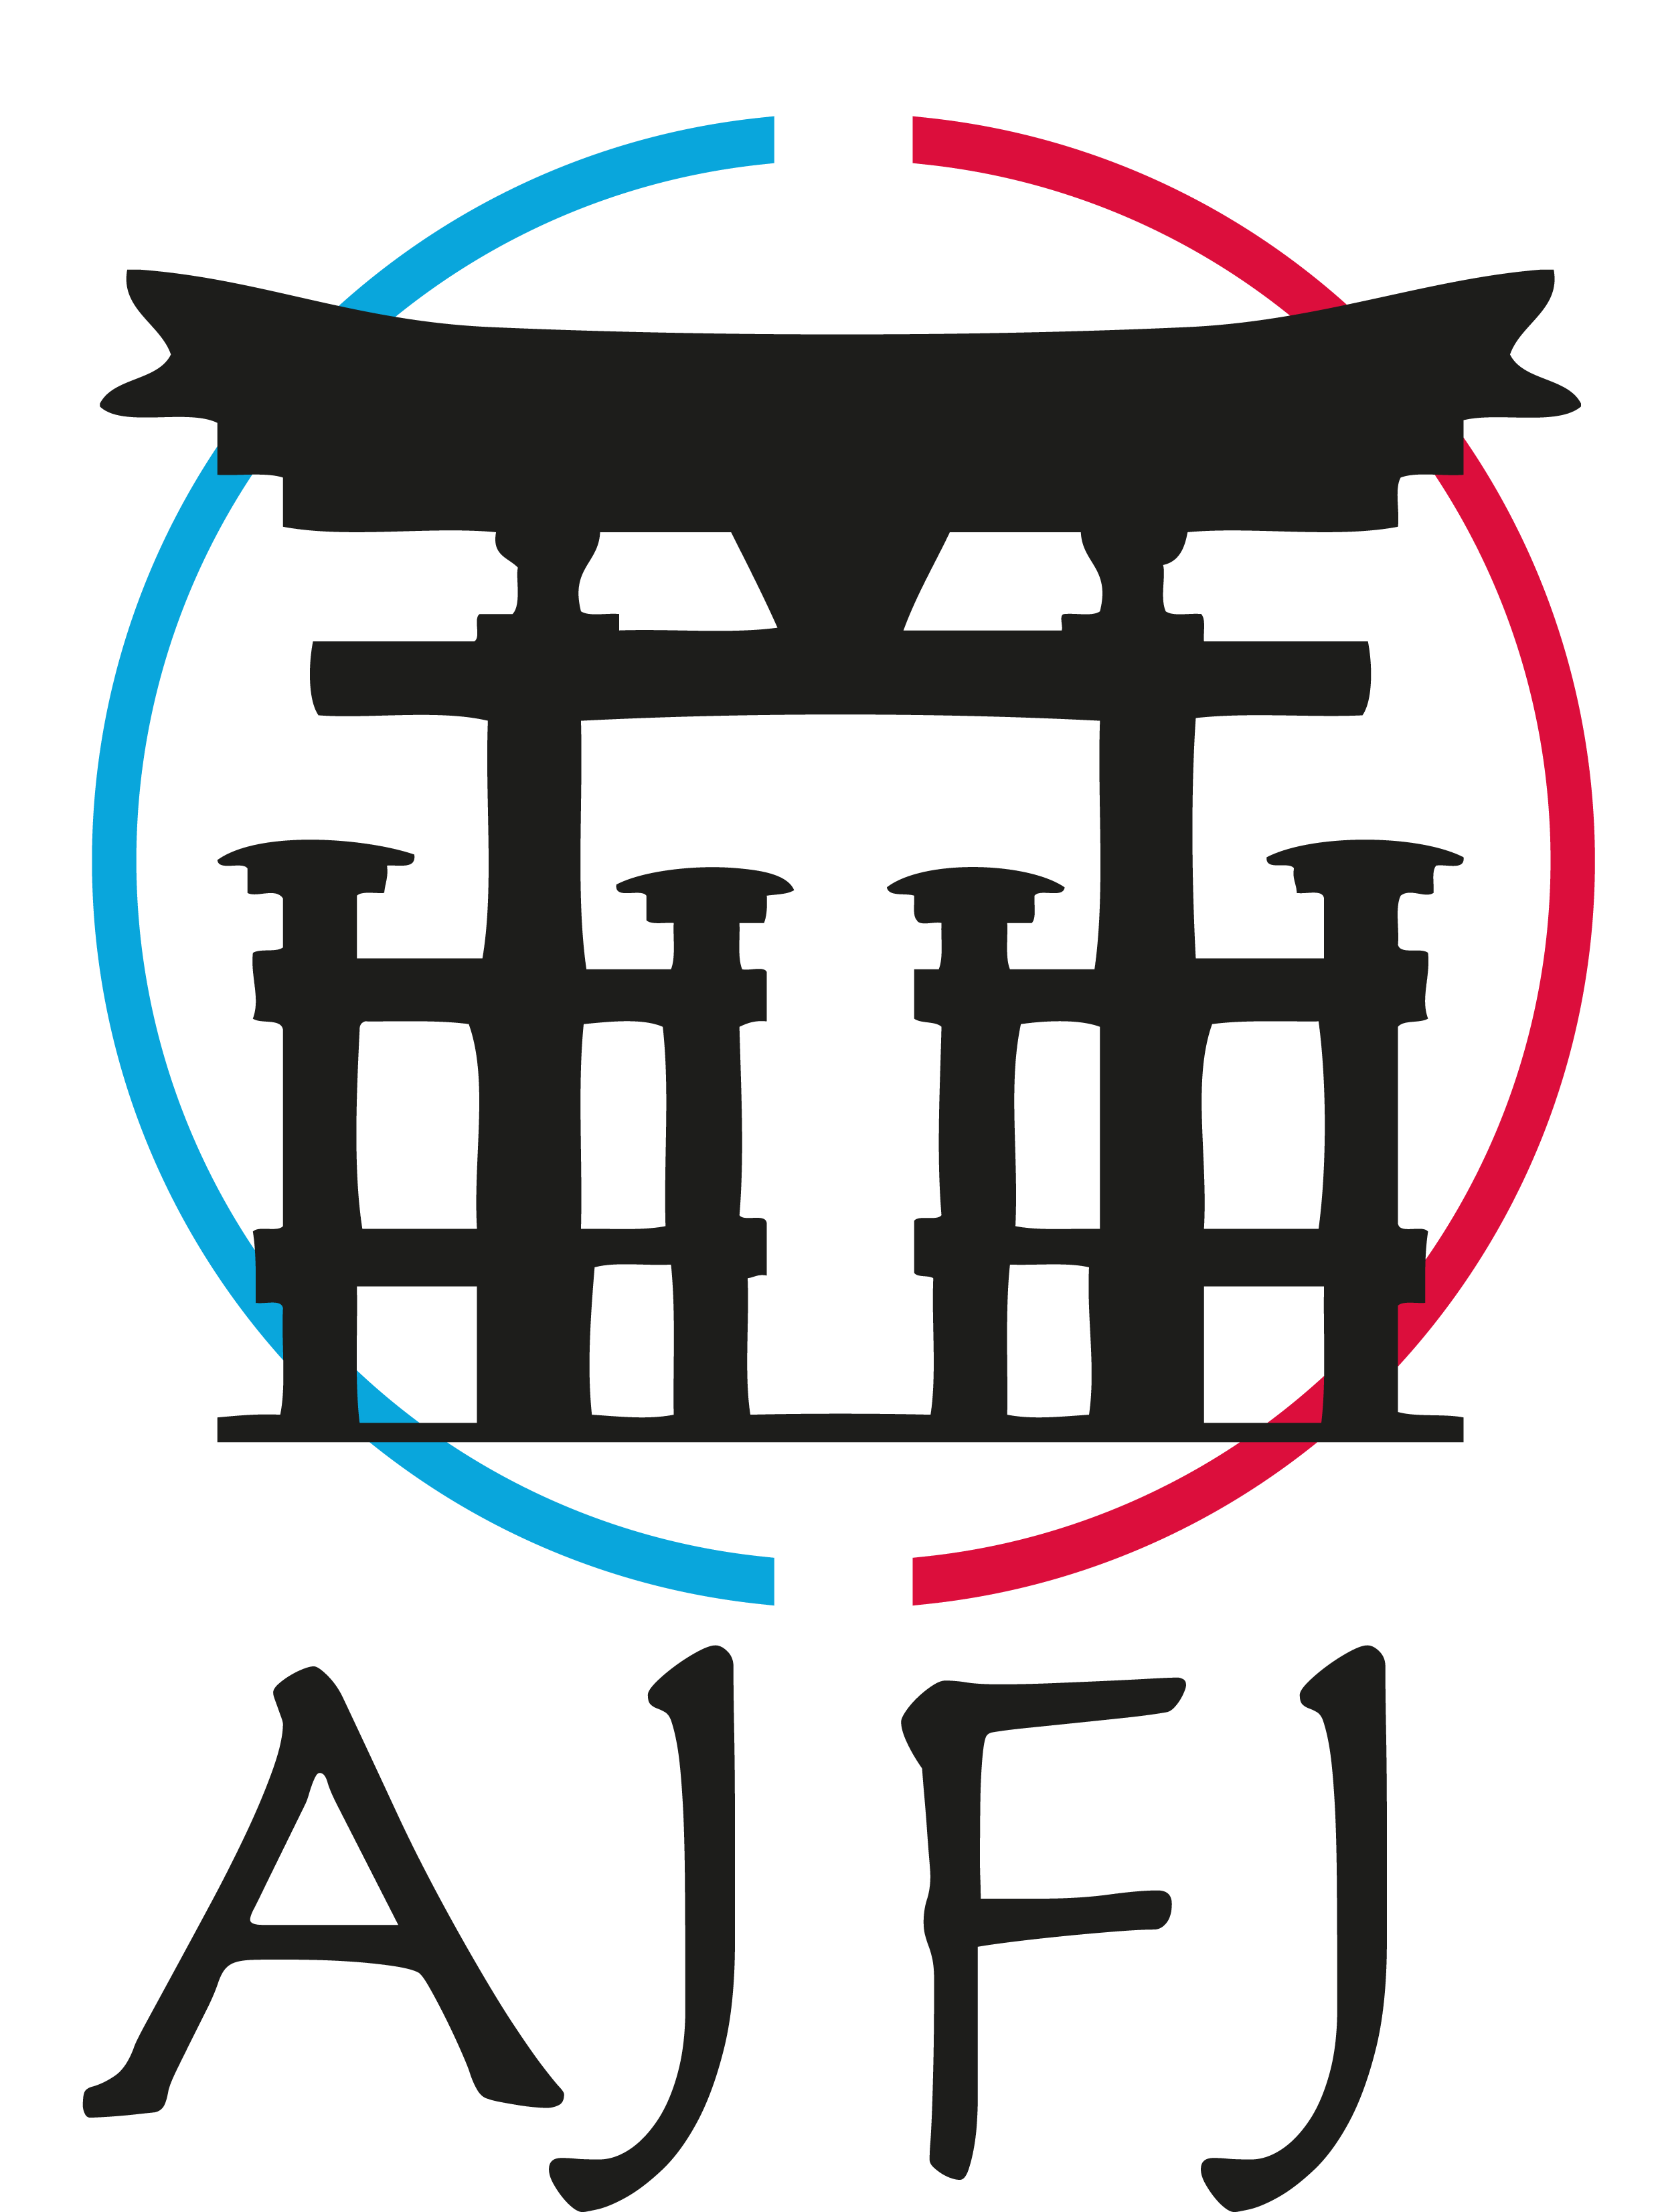 logo-AJFJ-NEW-HD